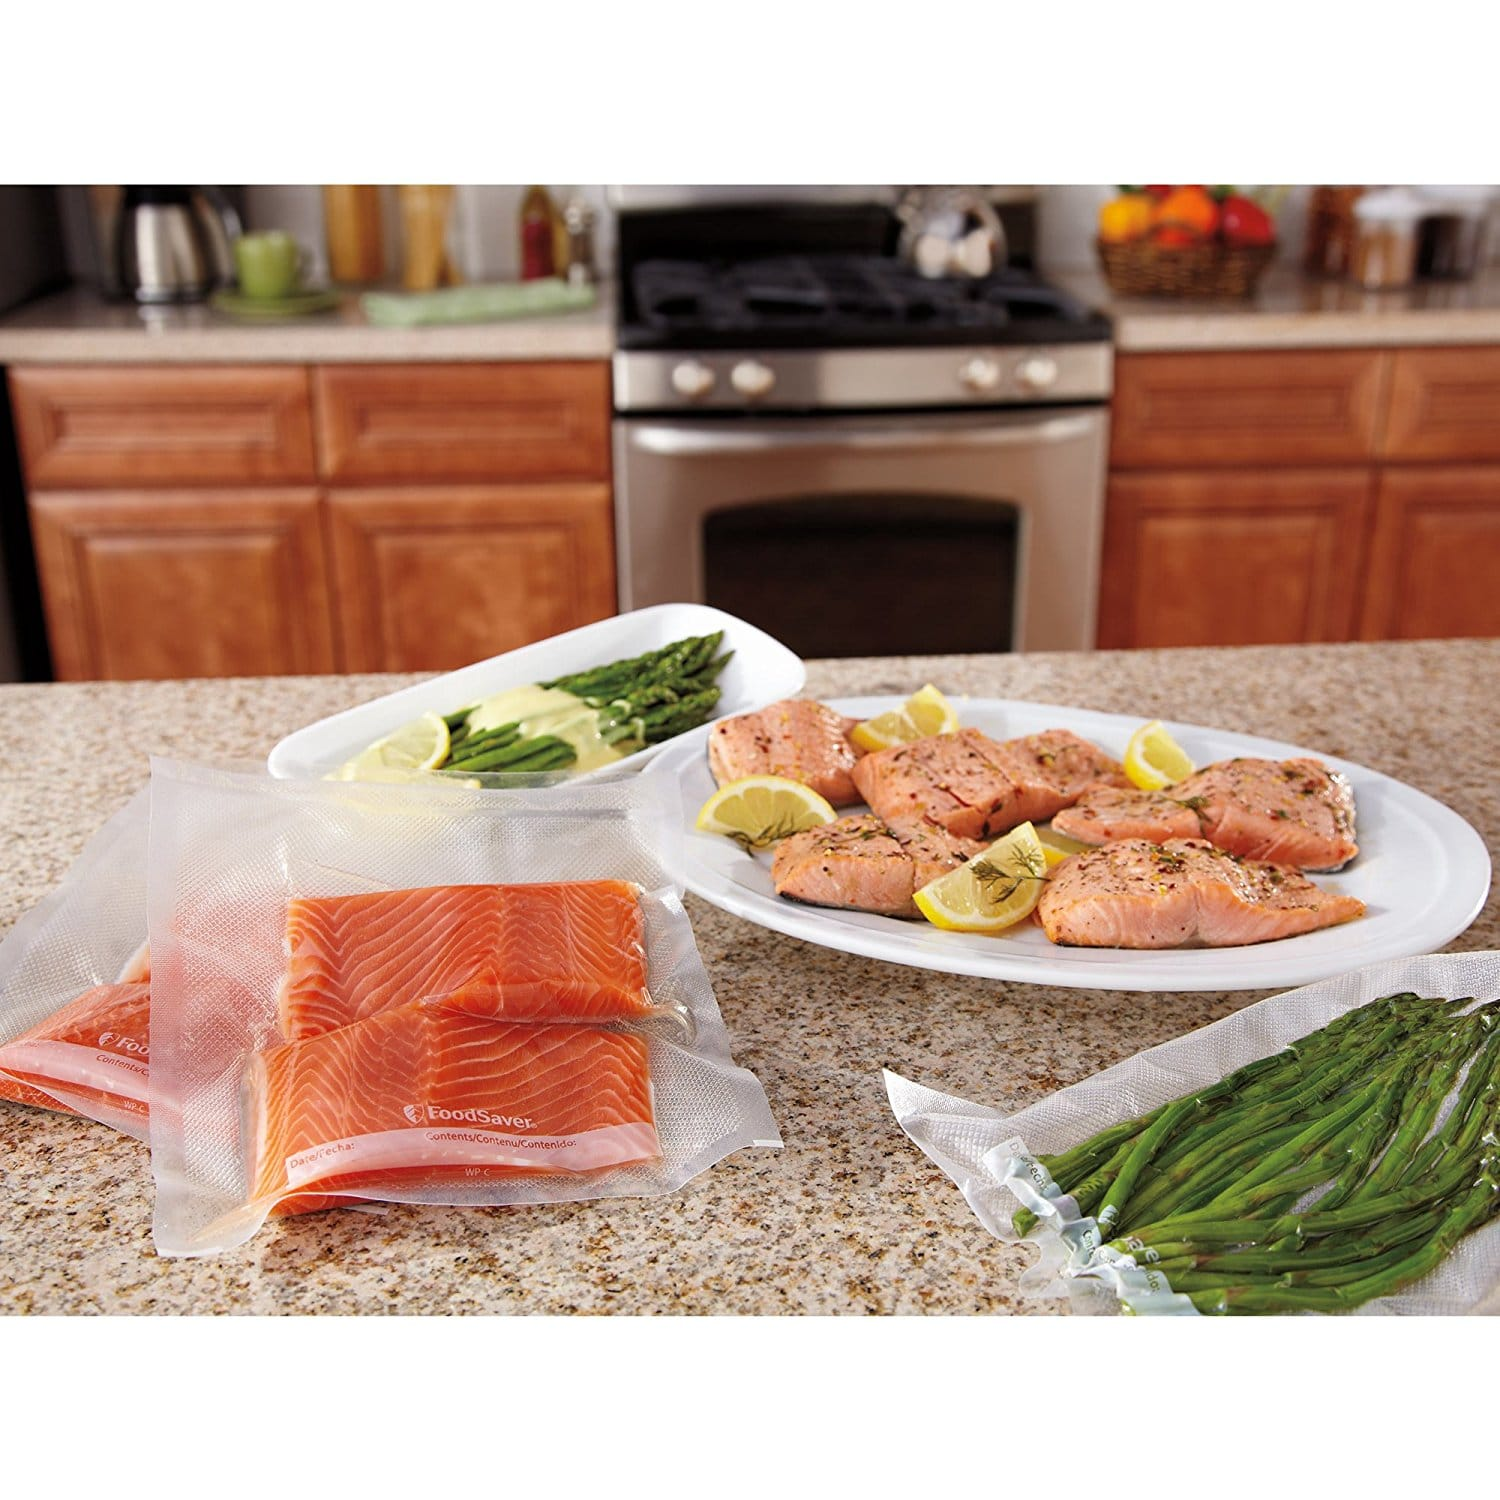 Vacuum Sealer Bag Reviews